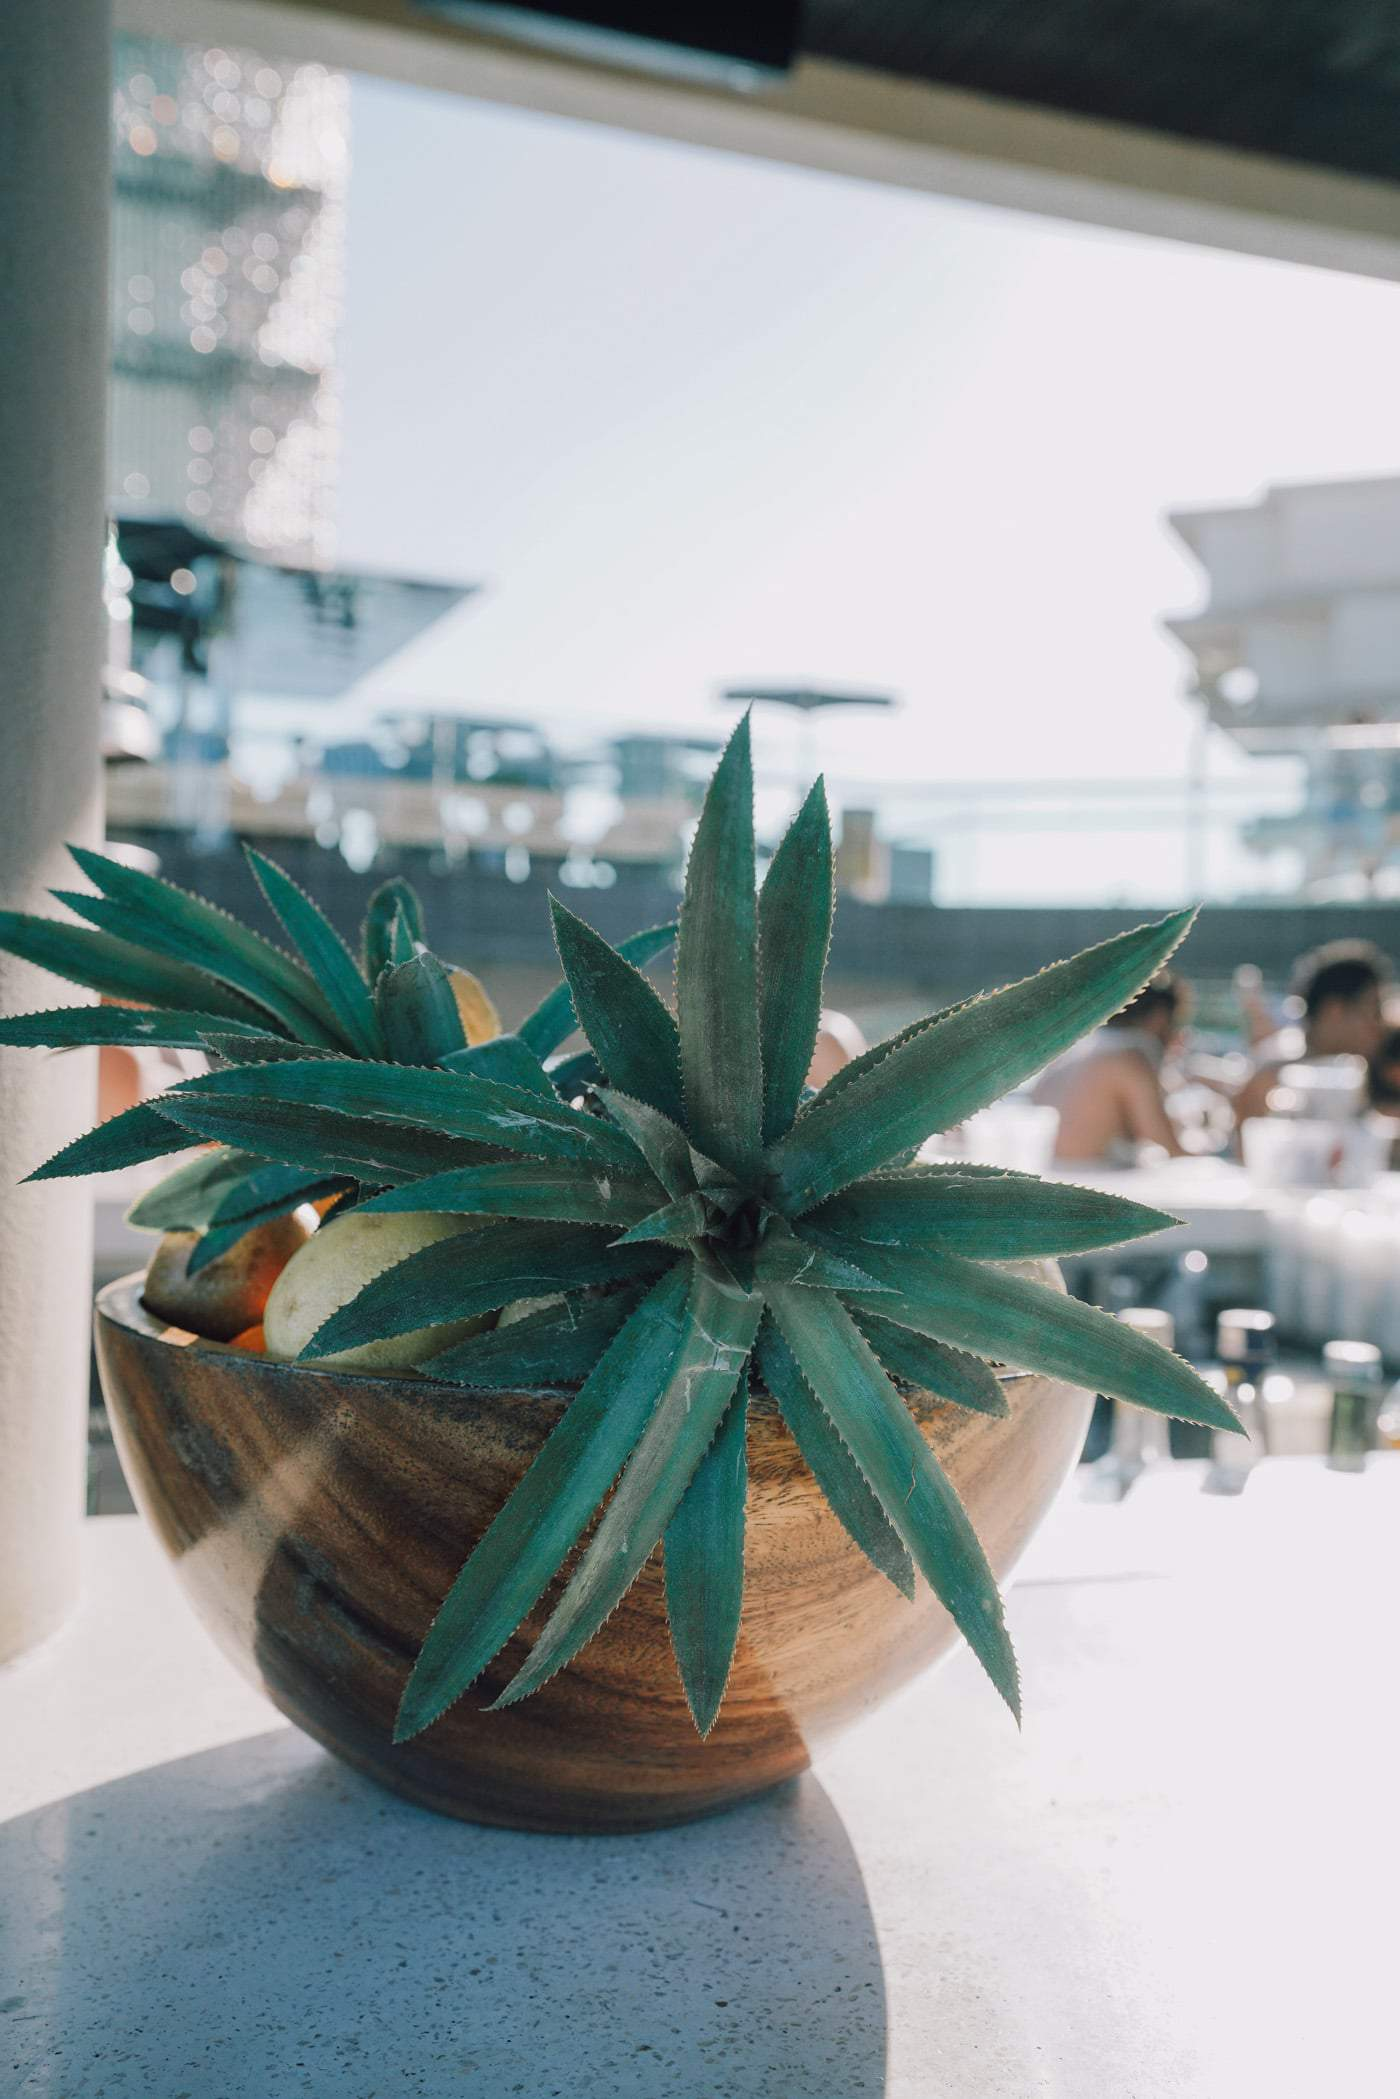 Looking for the best Bali beach clubs? We have you covered! Today, we're giving an honest review of 5 of Bali most notable beach clubs across the island. Including Omnia Beach Club in Uluwatu Bali.